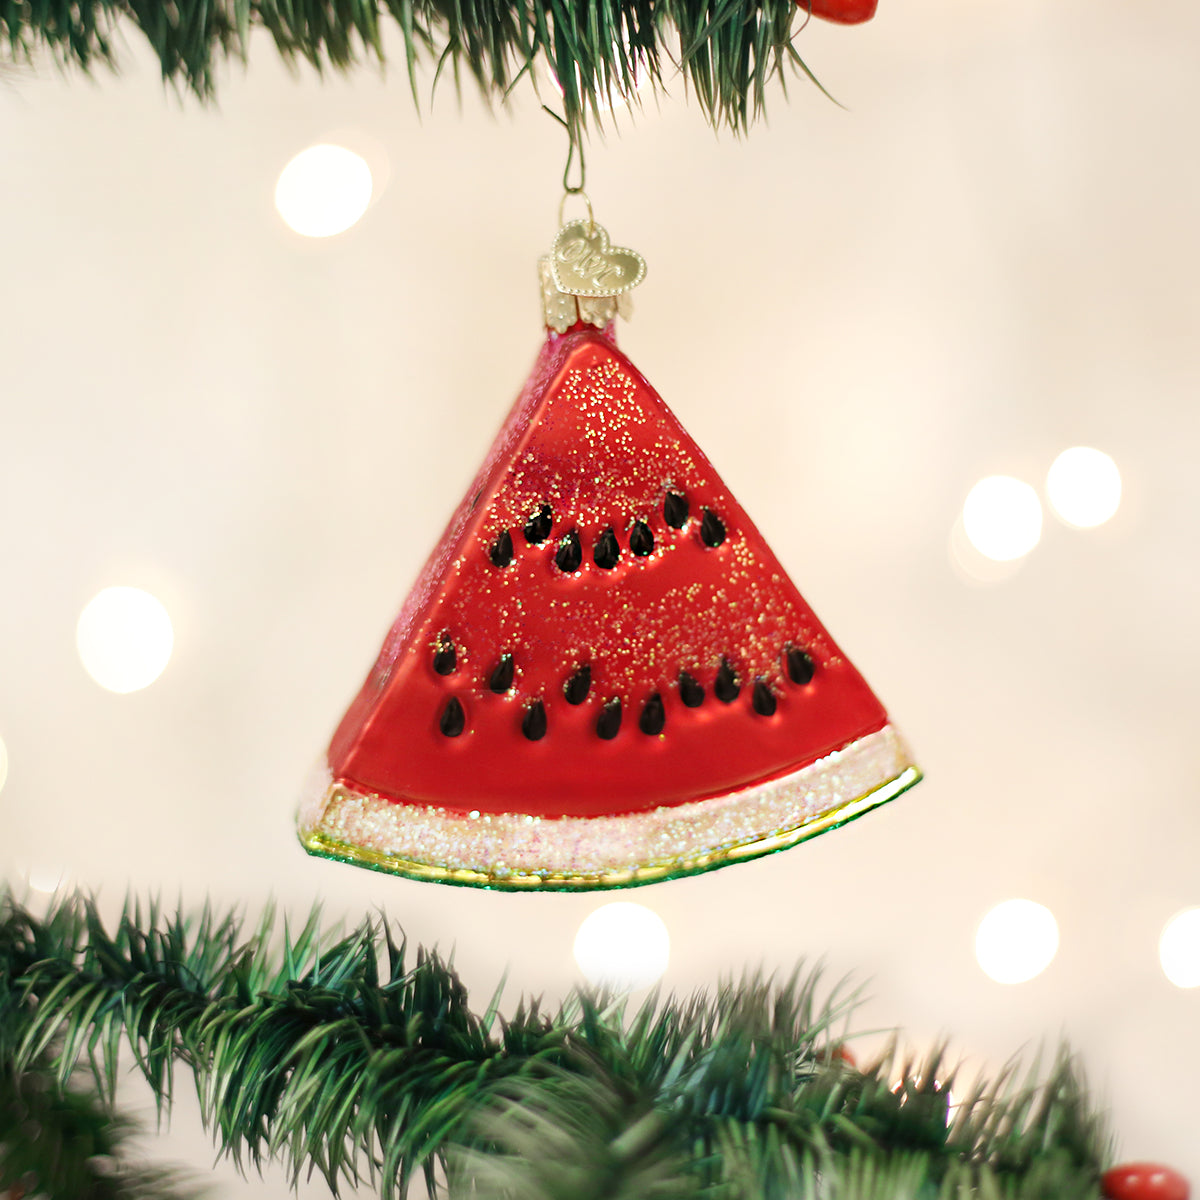 Watermelon Wedge Ornament Old World Christmas